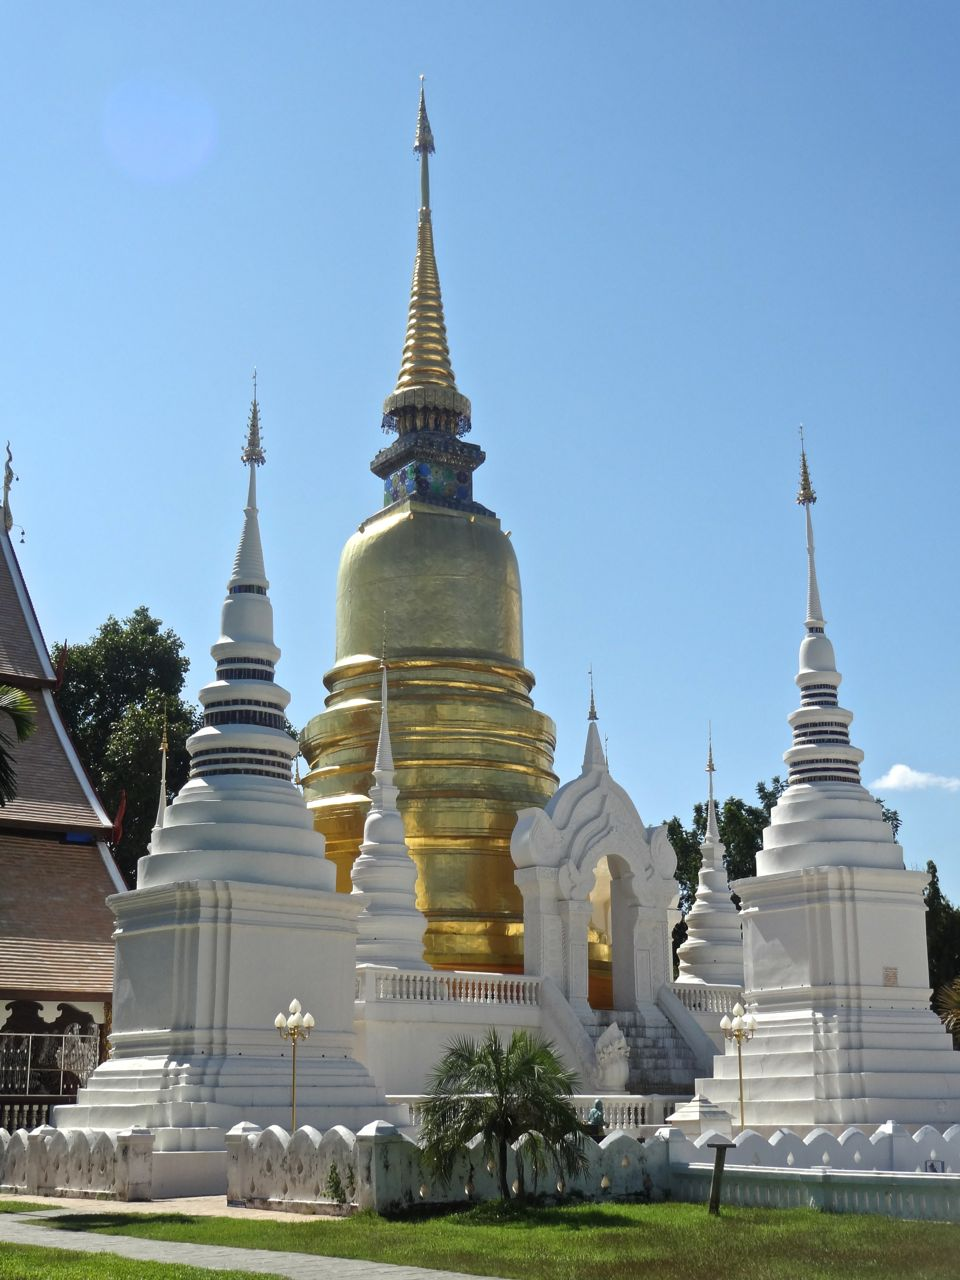 Scrumpdillyicious: Doi Suhtep & Wat Suan Dok in Chiang Mai, Thailand